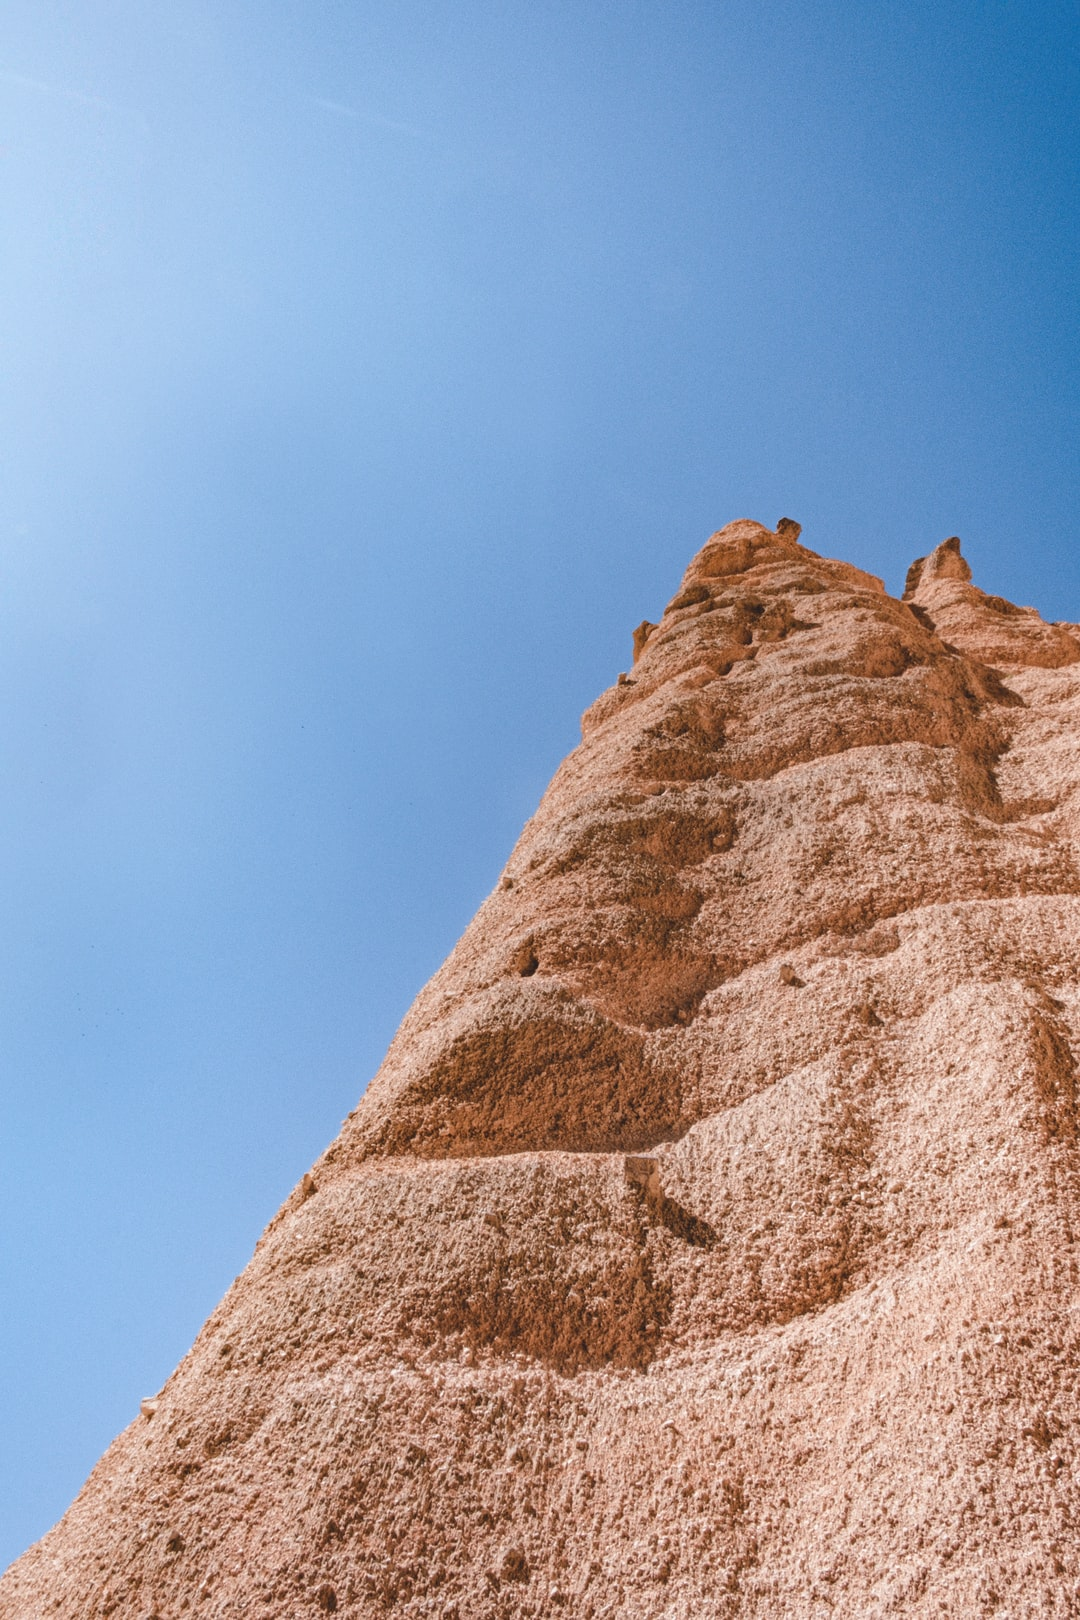 Lame Rosse detail - Fiastra, Italy